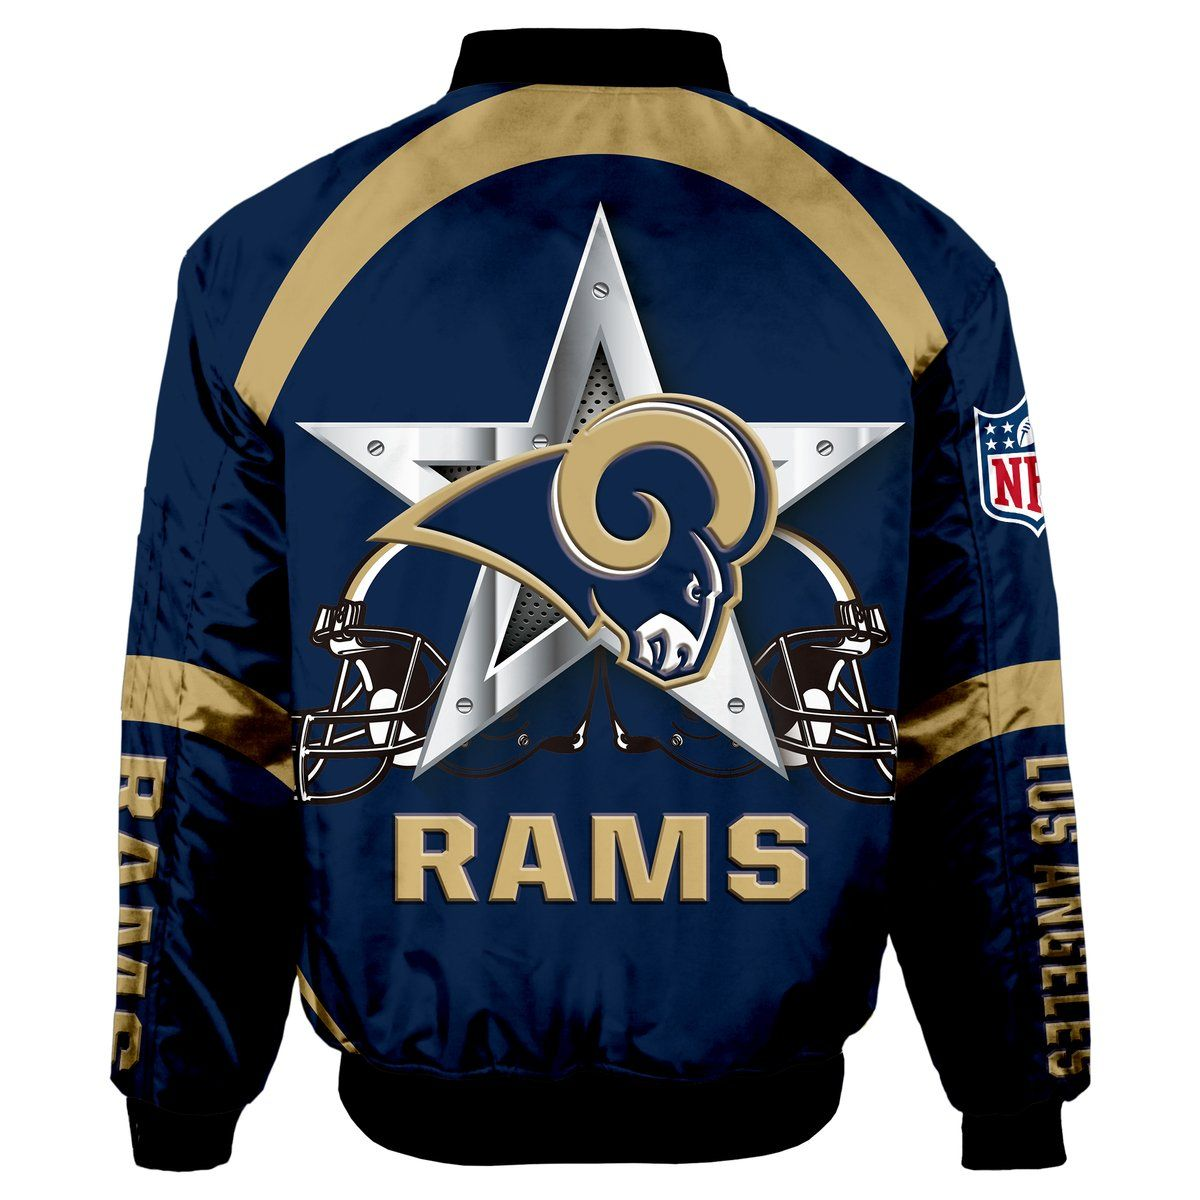 Los Angeles Rams Bomber Jacket Graphic Player Running In 2020 Bomber Jacket Jackets Types Of Sleeves